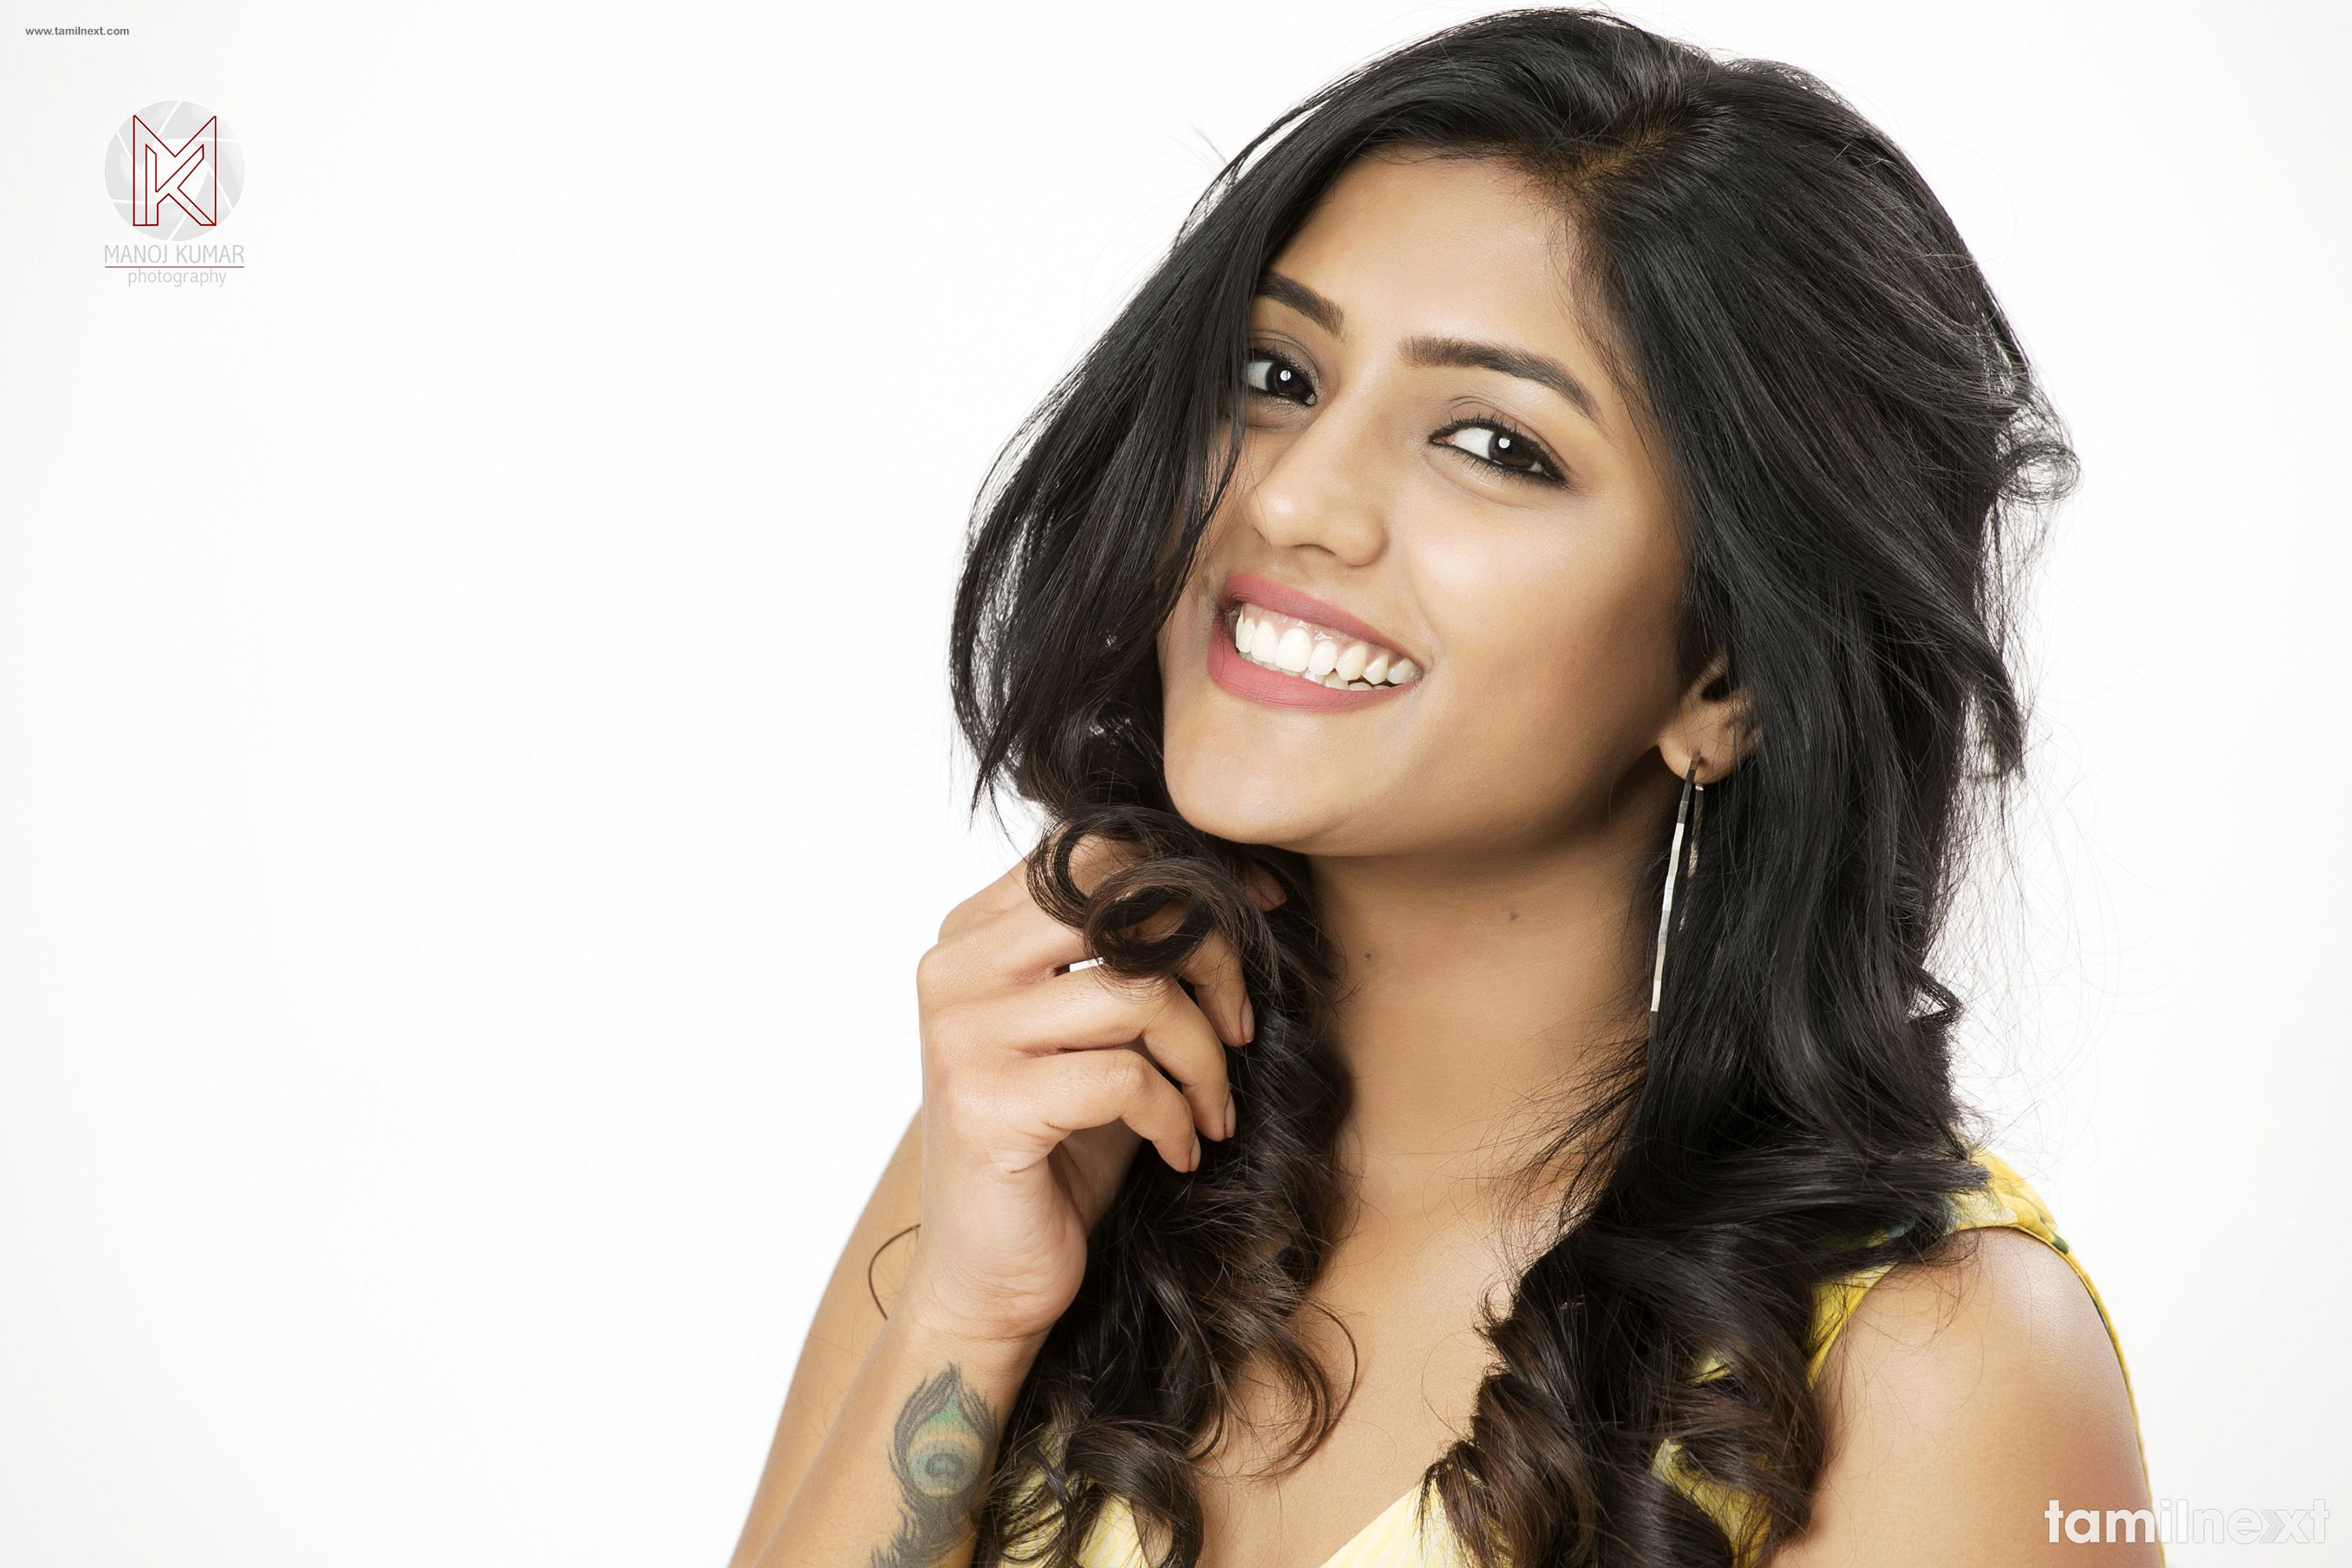 actress eesha rebba hot photoshoot hd stills – tamilnext